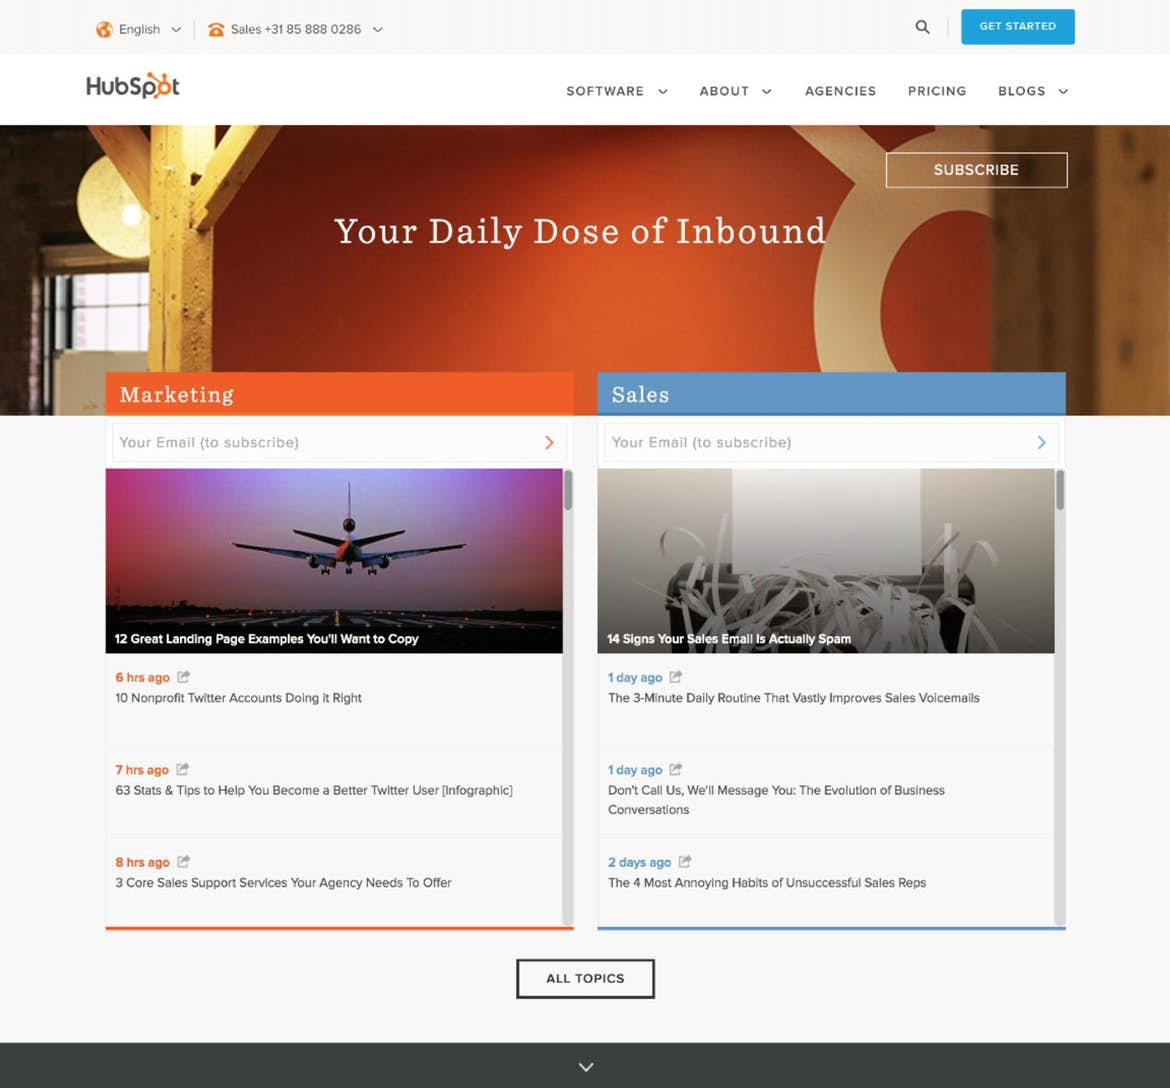 HubSpot features three CTAs on their main blog page